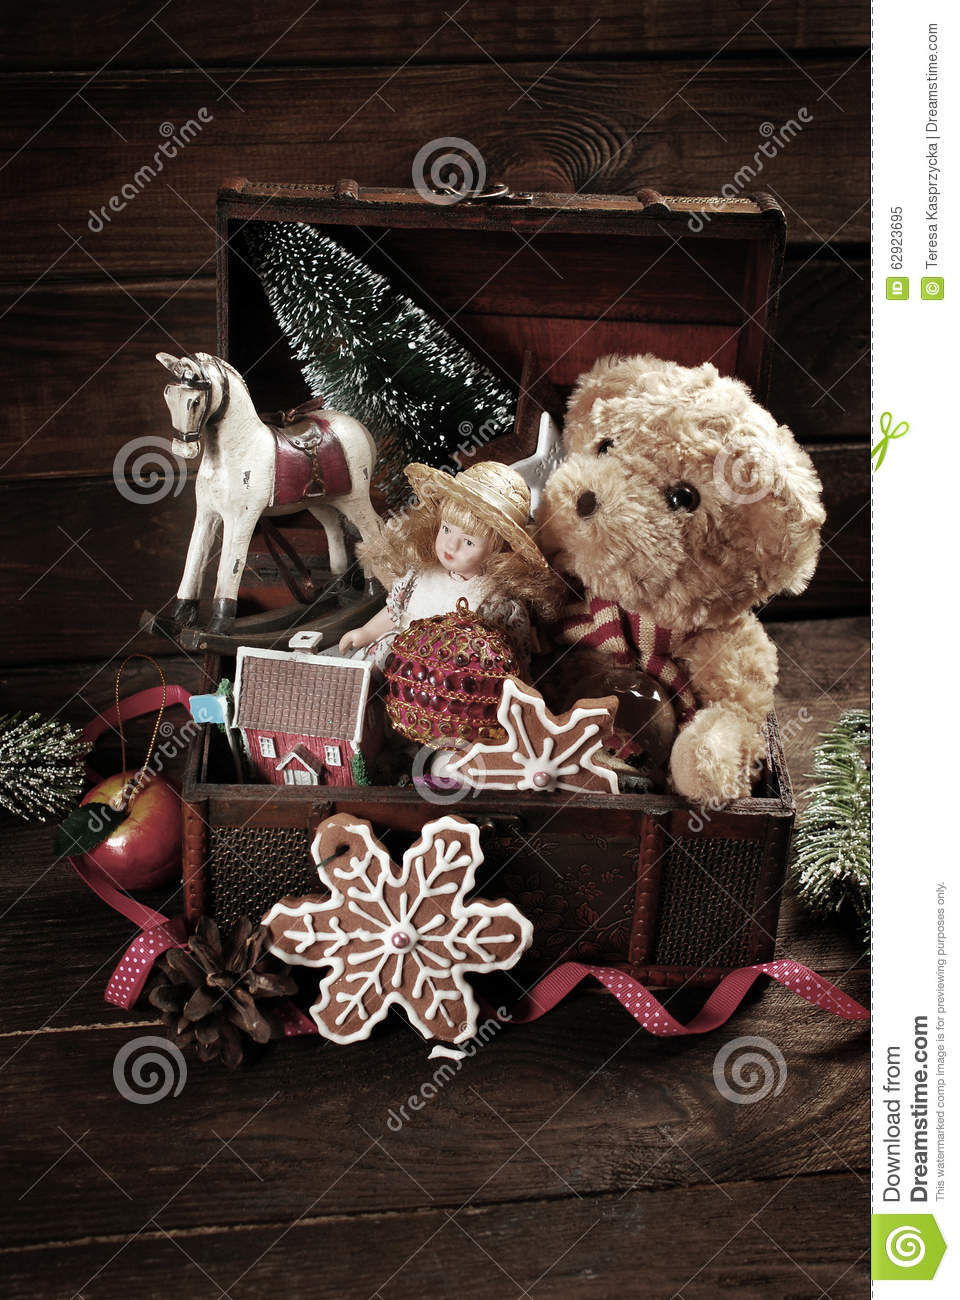 Treasure Chest Decorations Vintage Christmas Toys In Old Treasure Chest Stock Photo Image